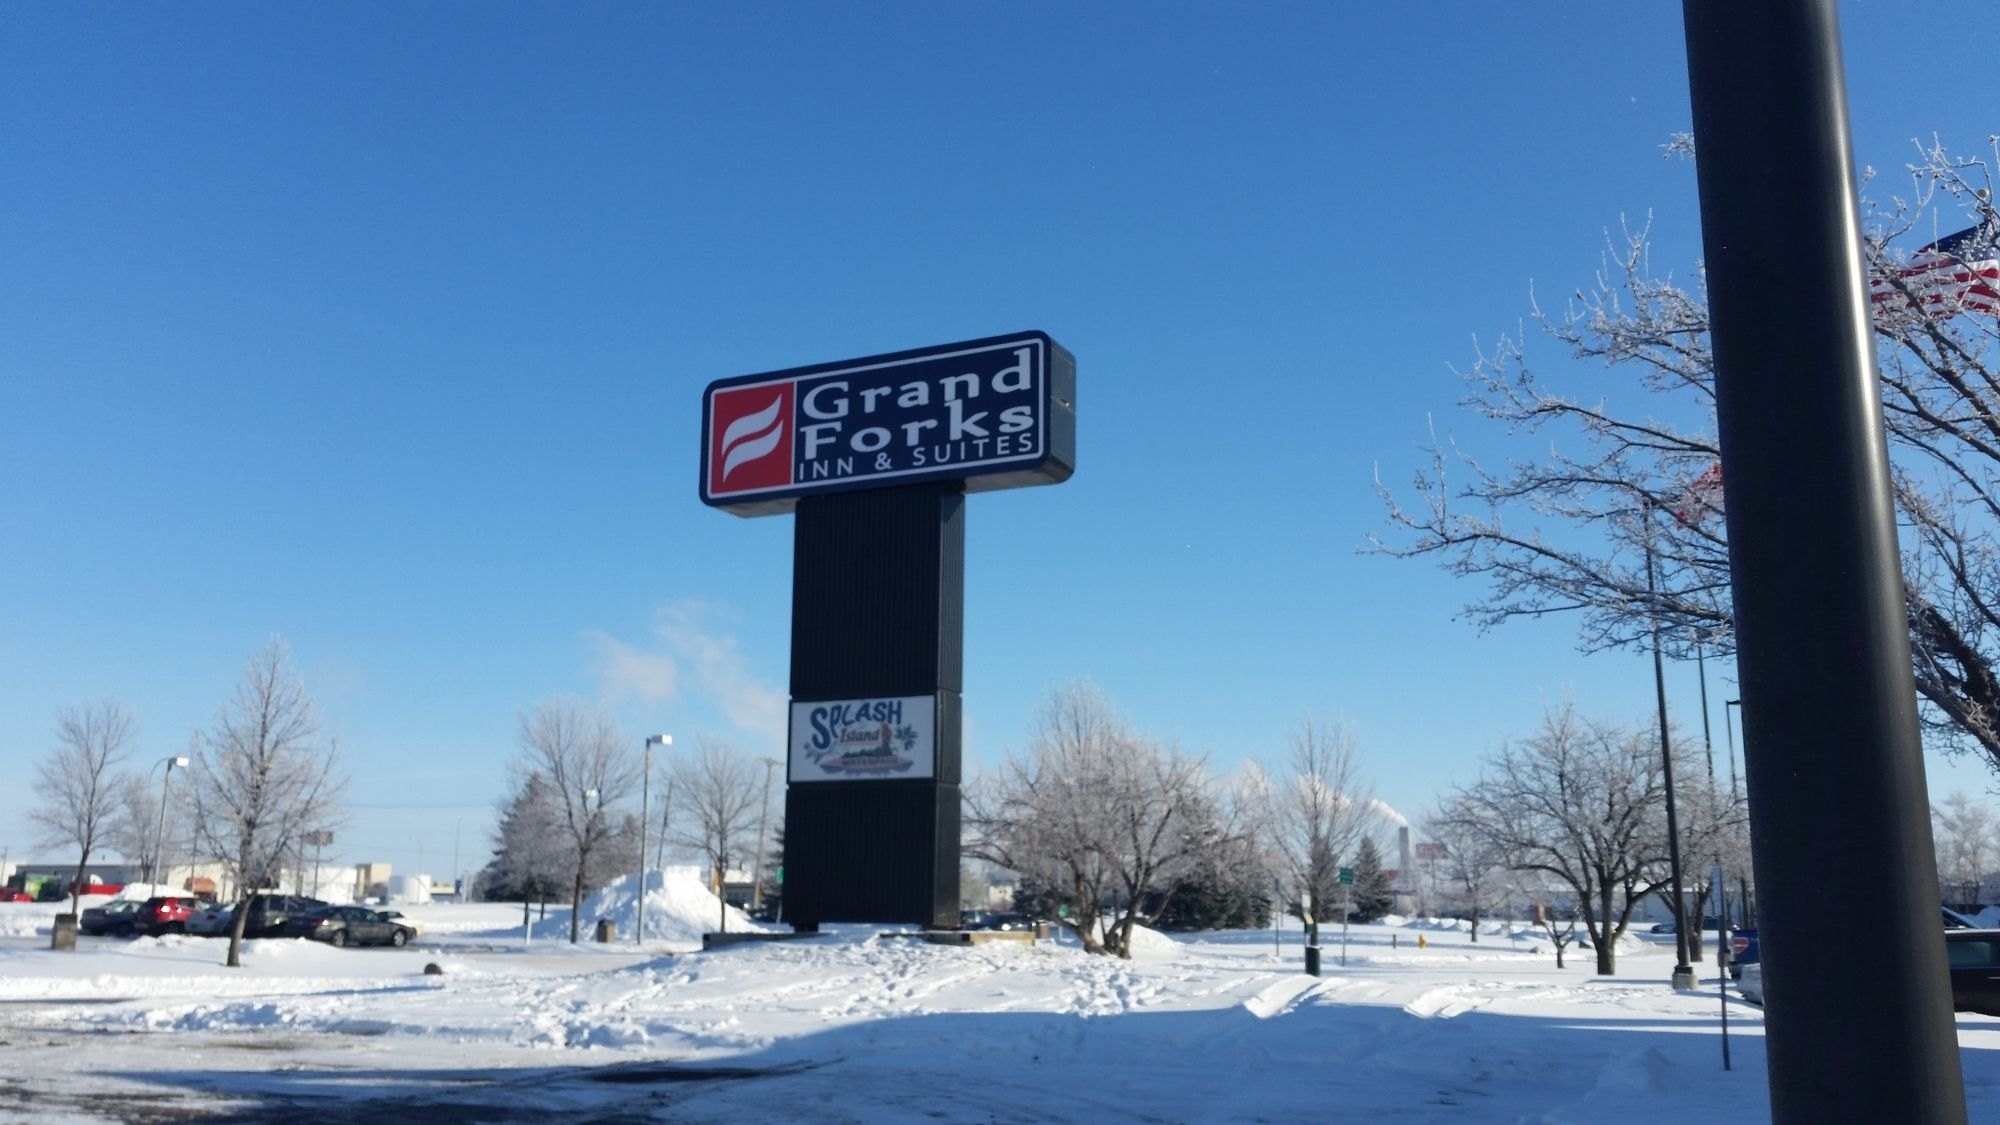 Choice Hotels Grand Forks Nd